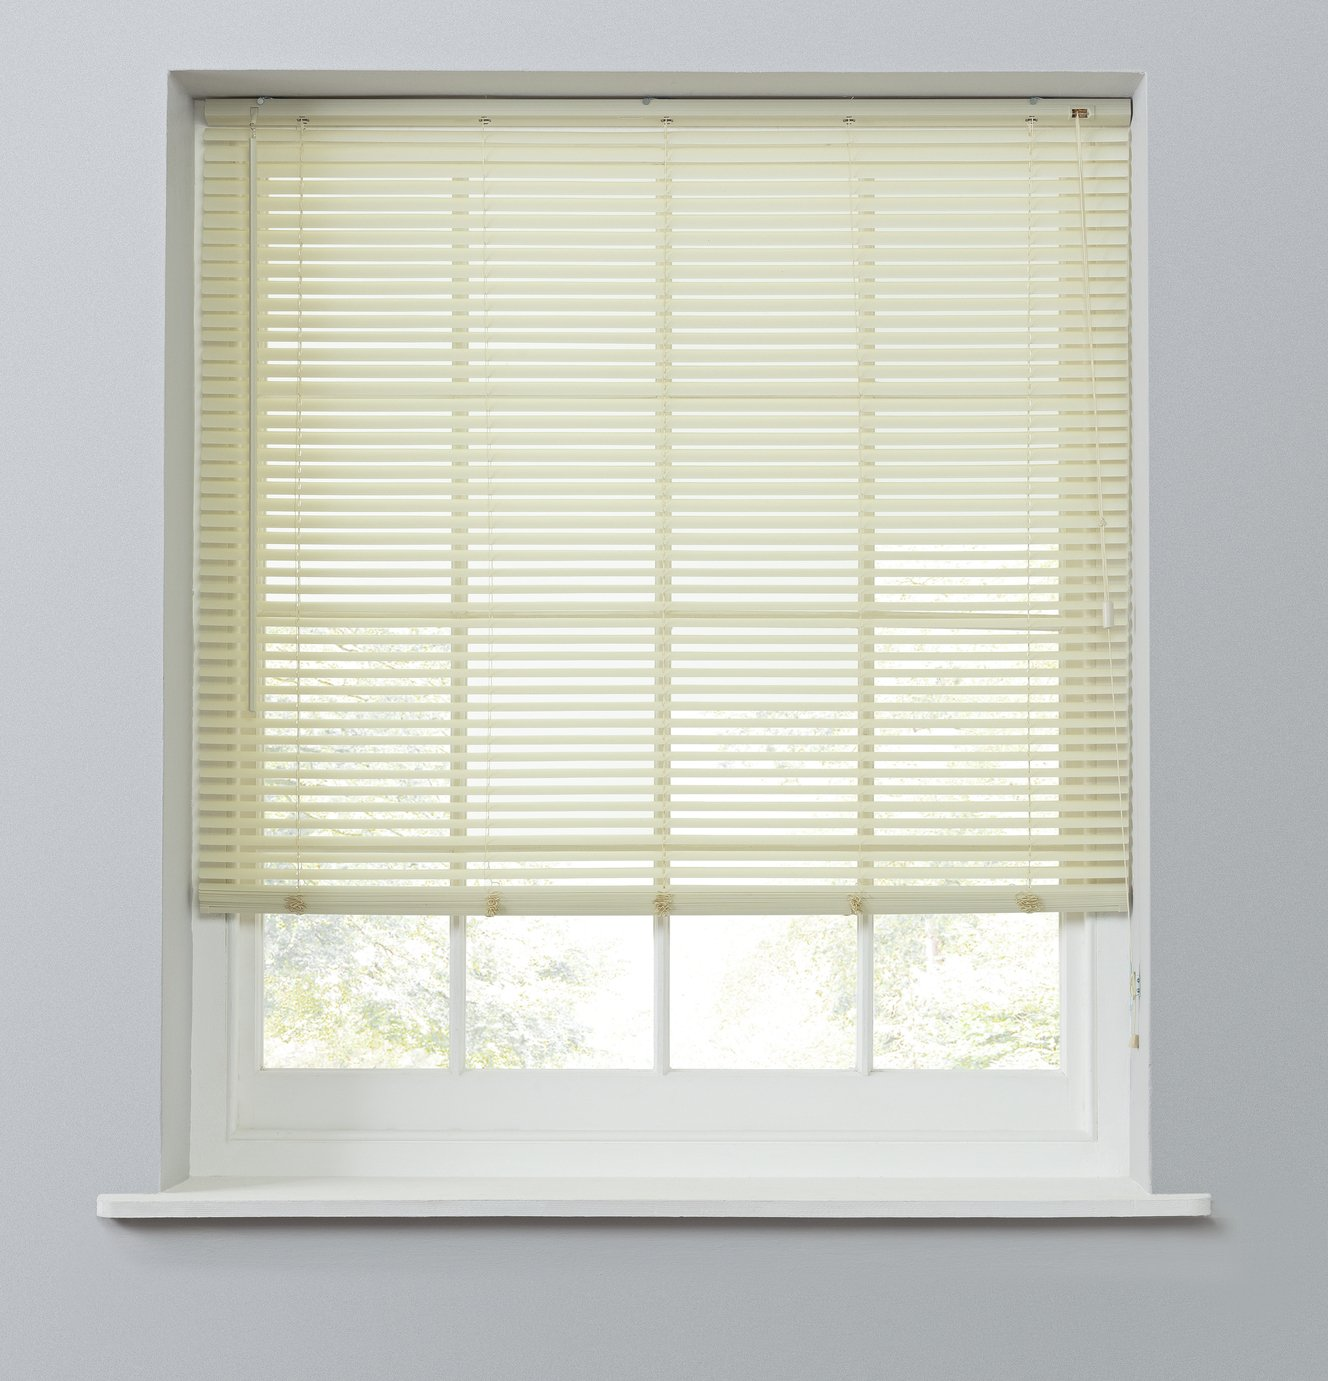 Argos Home 25mm PVC Venetian Blind - Cream